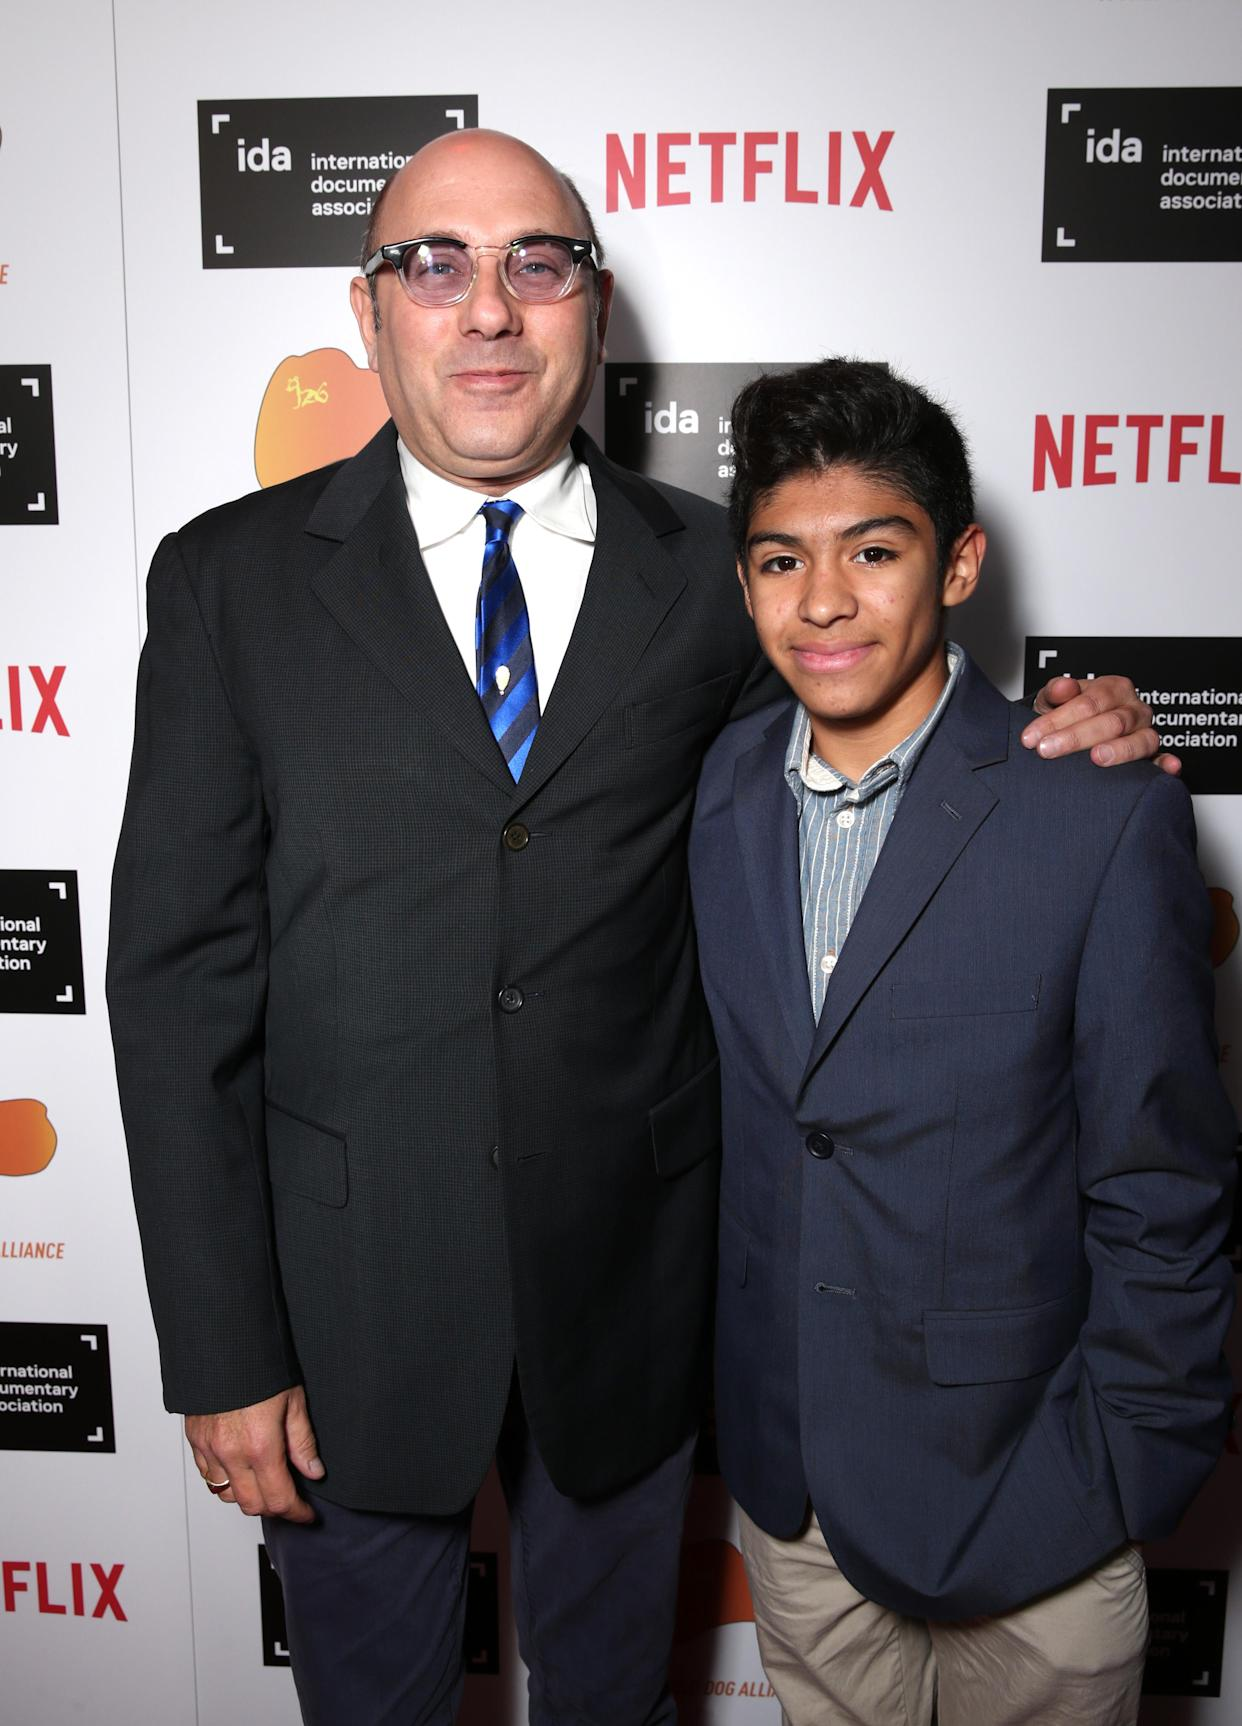 HOLLYWOOD, CA - DECEMBER 05:  Actor Willie Garson (L) and son Nathan Garson attend the 2015 IDA Awards at Paramount Studios on December 5, 2015 in Hollywood, California.  (Photo by Todd Williamson/Getty Images for International Documentary Association)